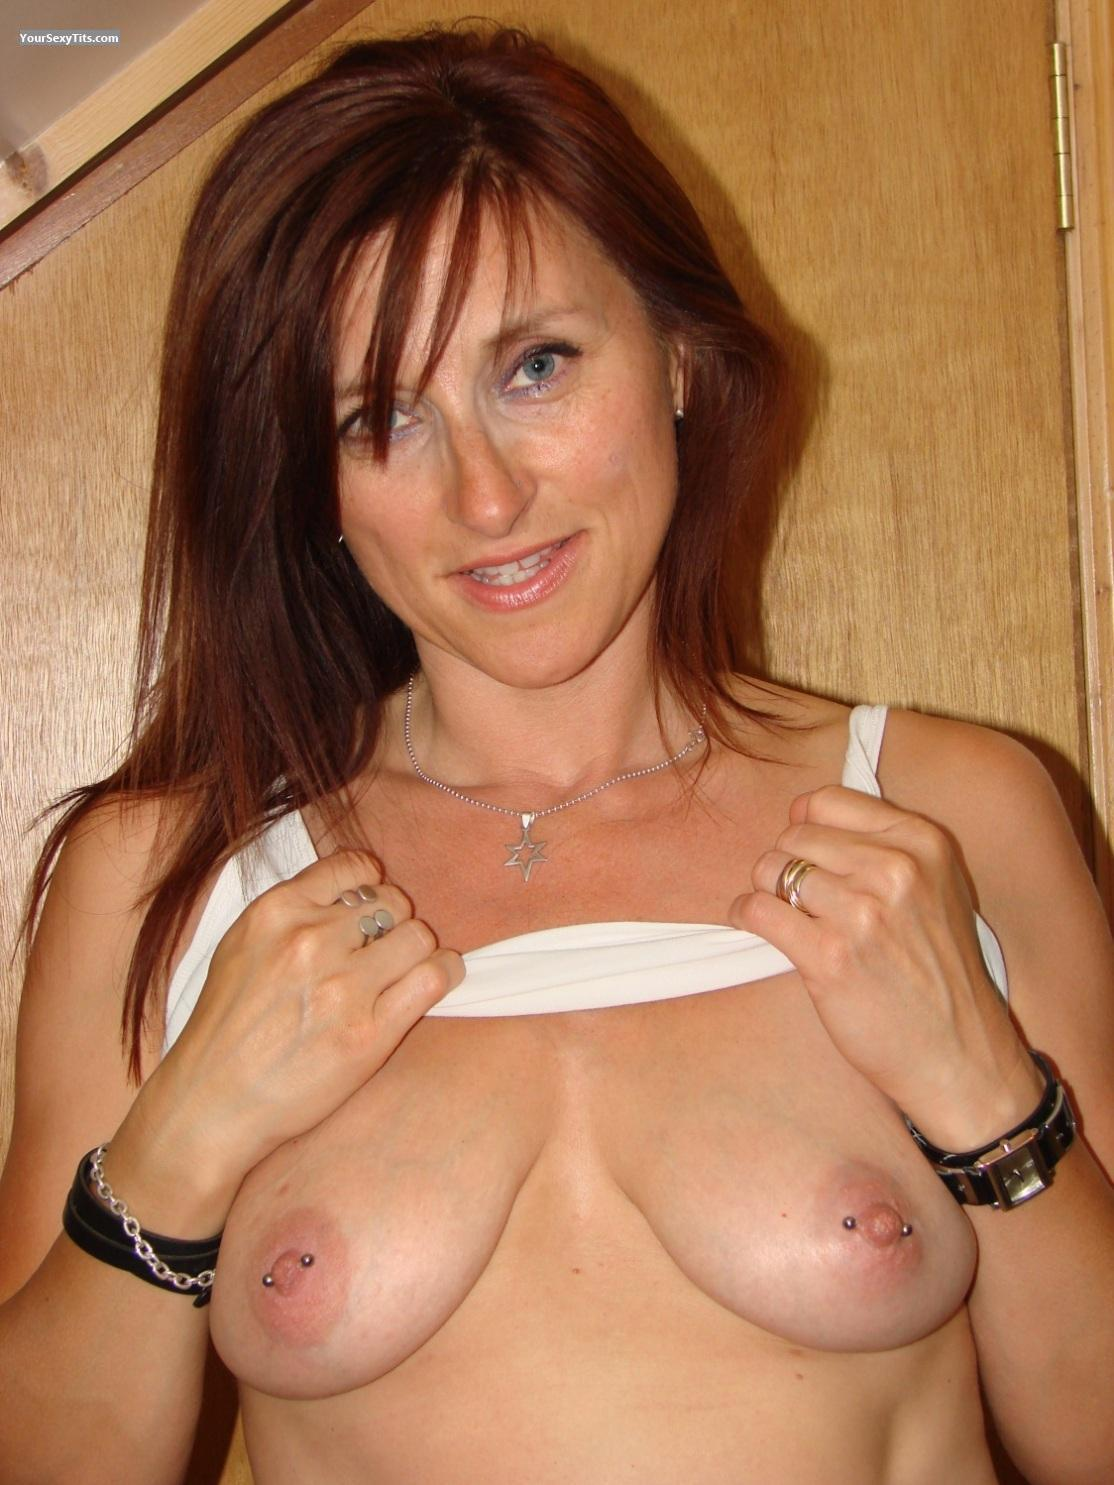 Sydney recommend best of small tits small nipples